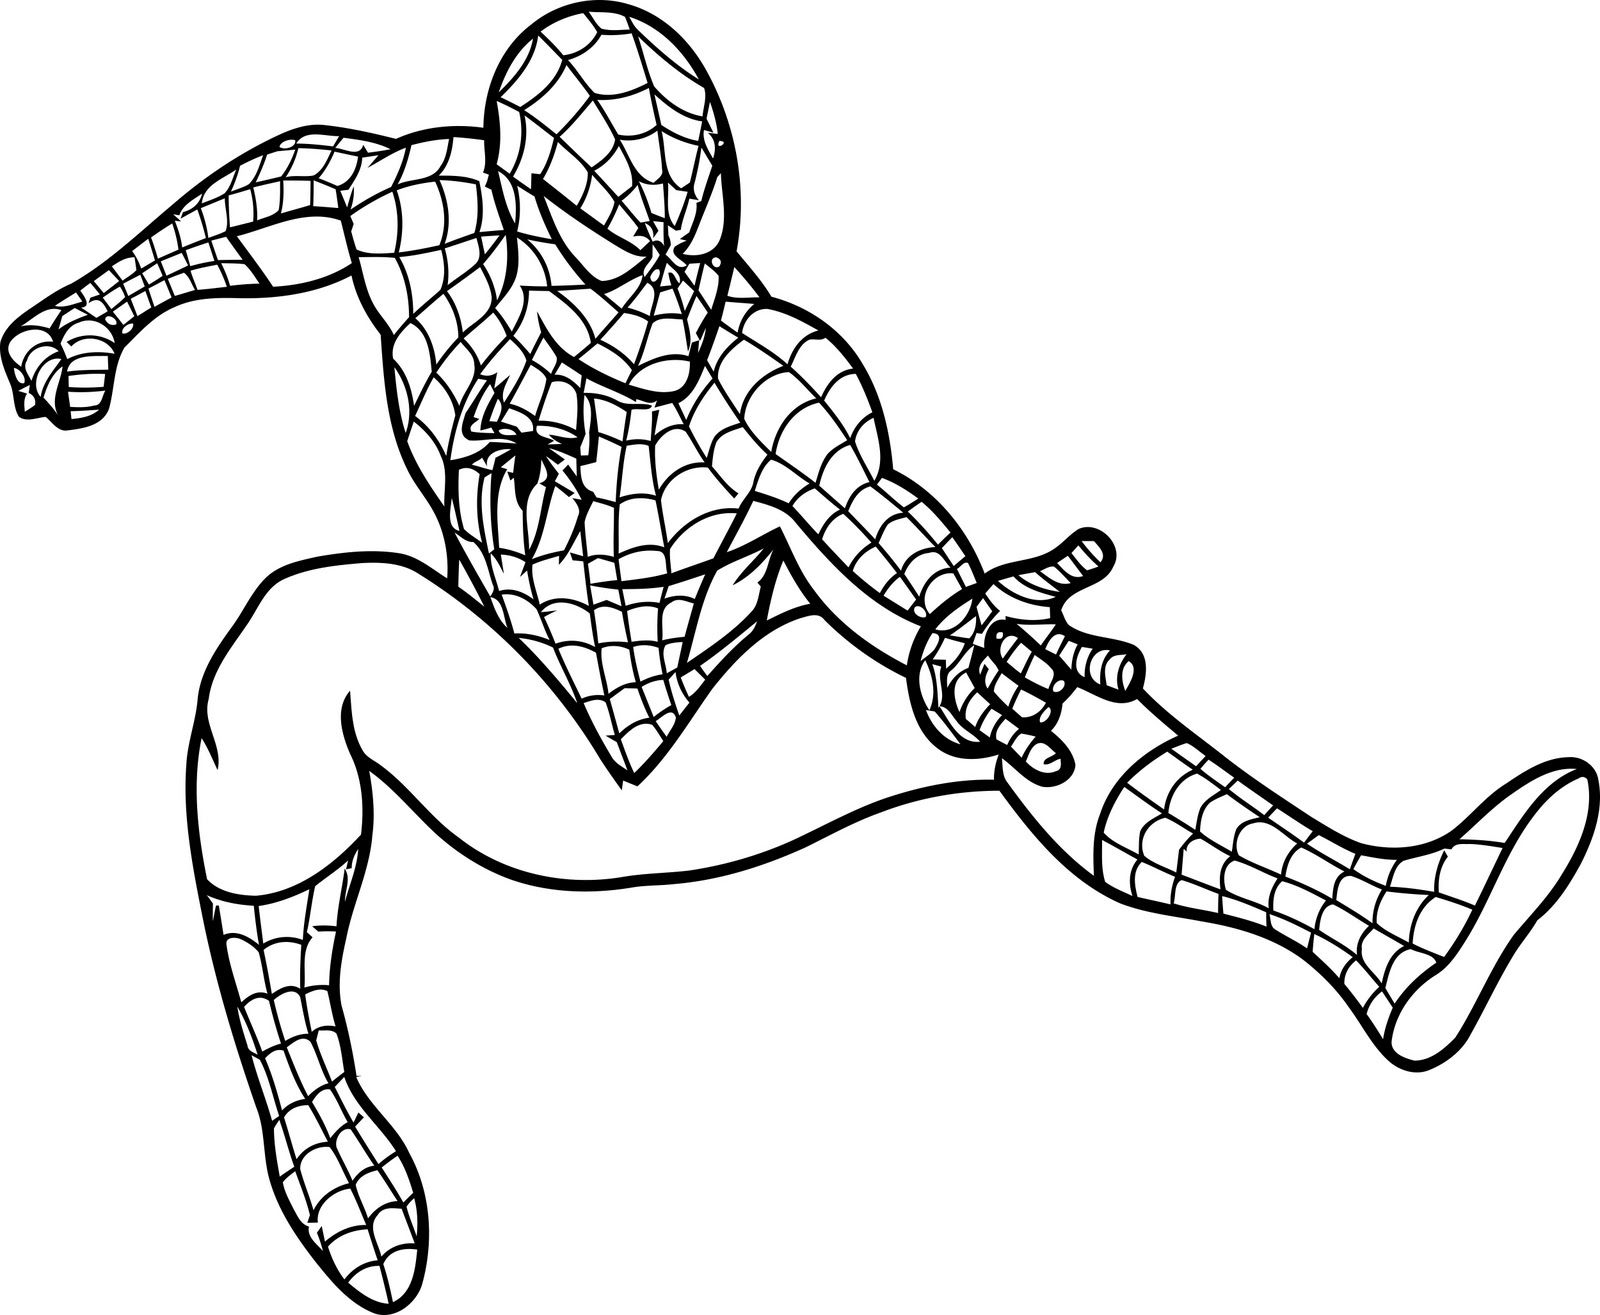 Free Printable Spiderman Coloring Pages For Kids Superhero Coloring Pages Avengers Coloring Pages Superhero Coloring